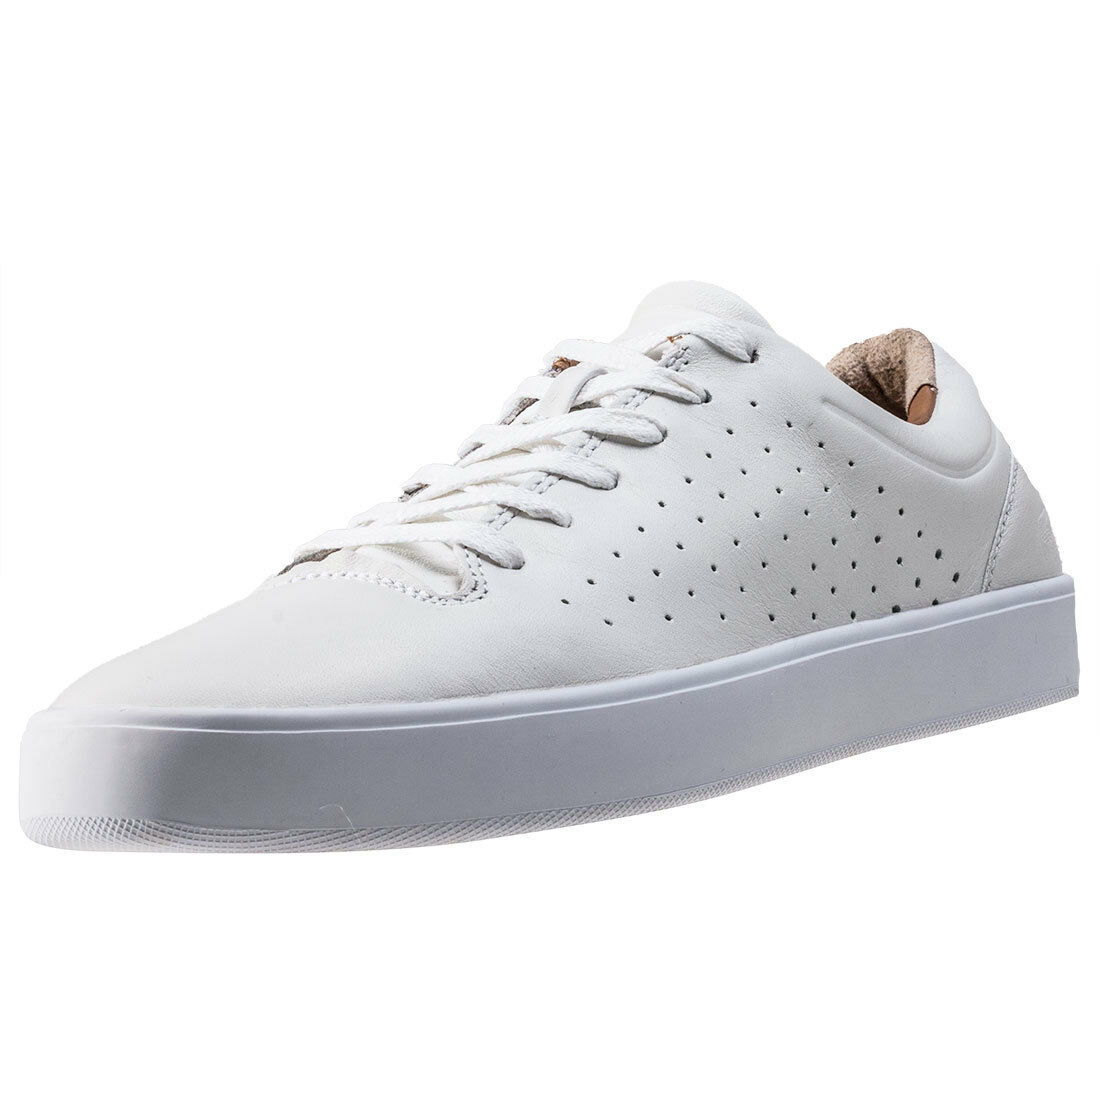 Lacoste Tamora Lace Up 116 2 Damenschuhe Trainers Off WEISS New Schuhes